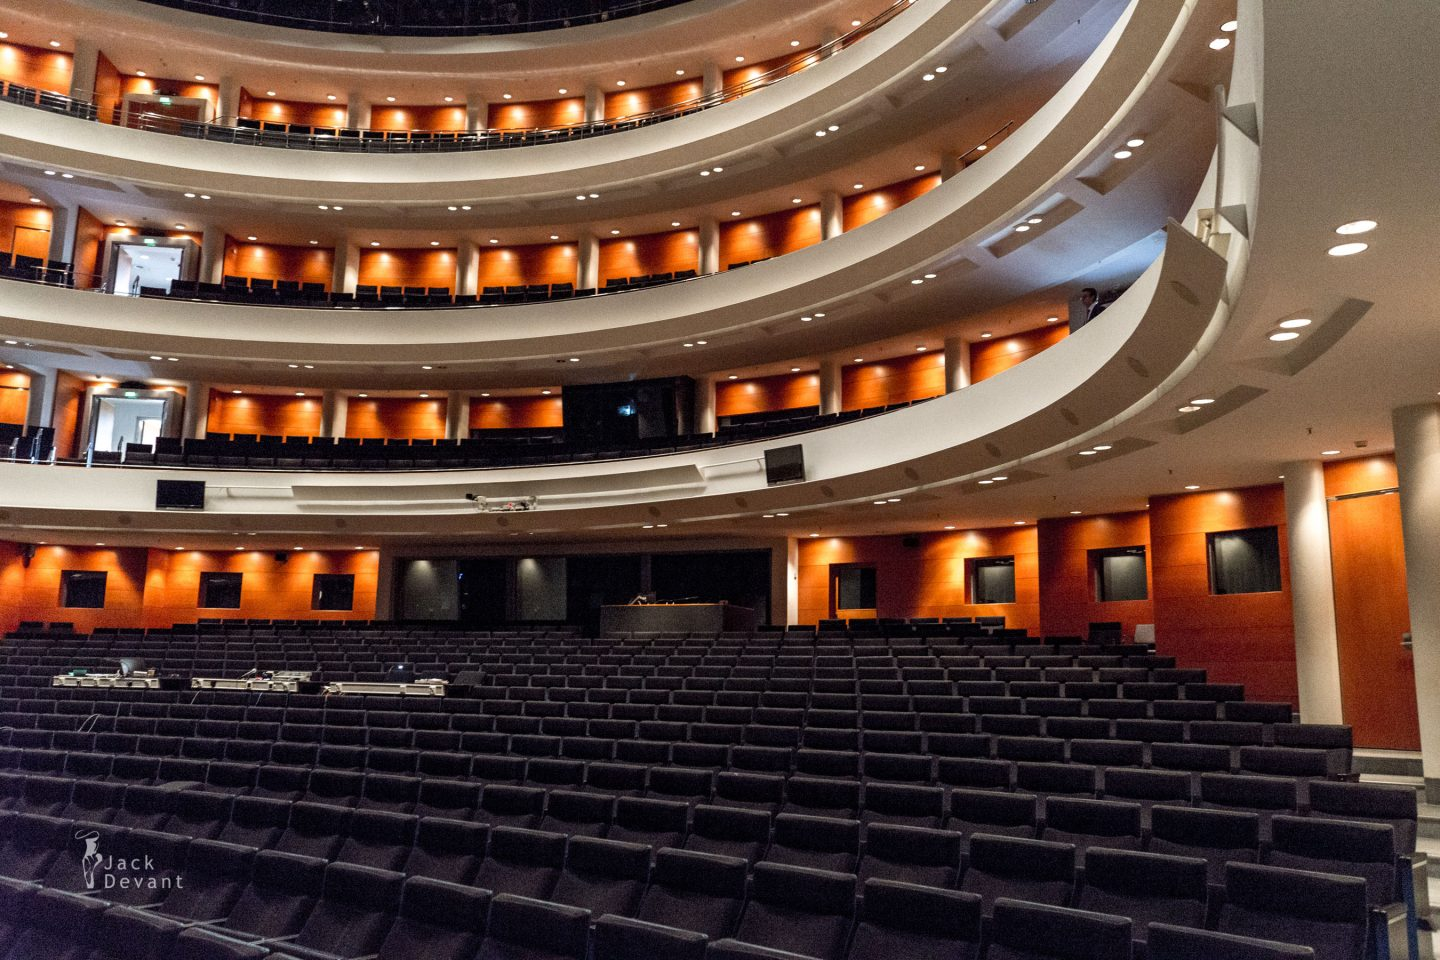 The Finnish National Opera auditorium